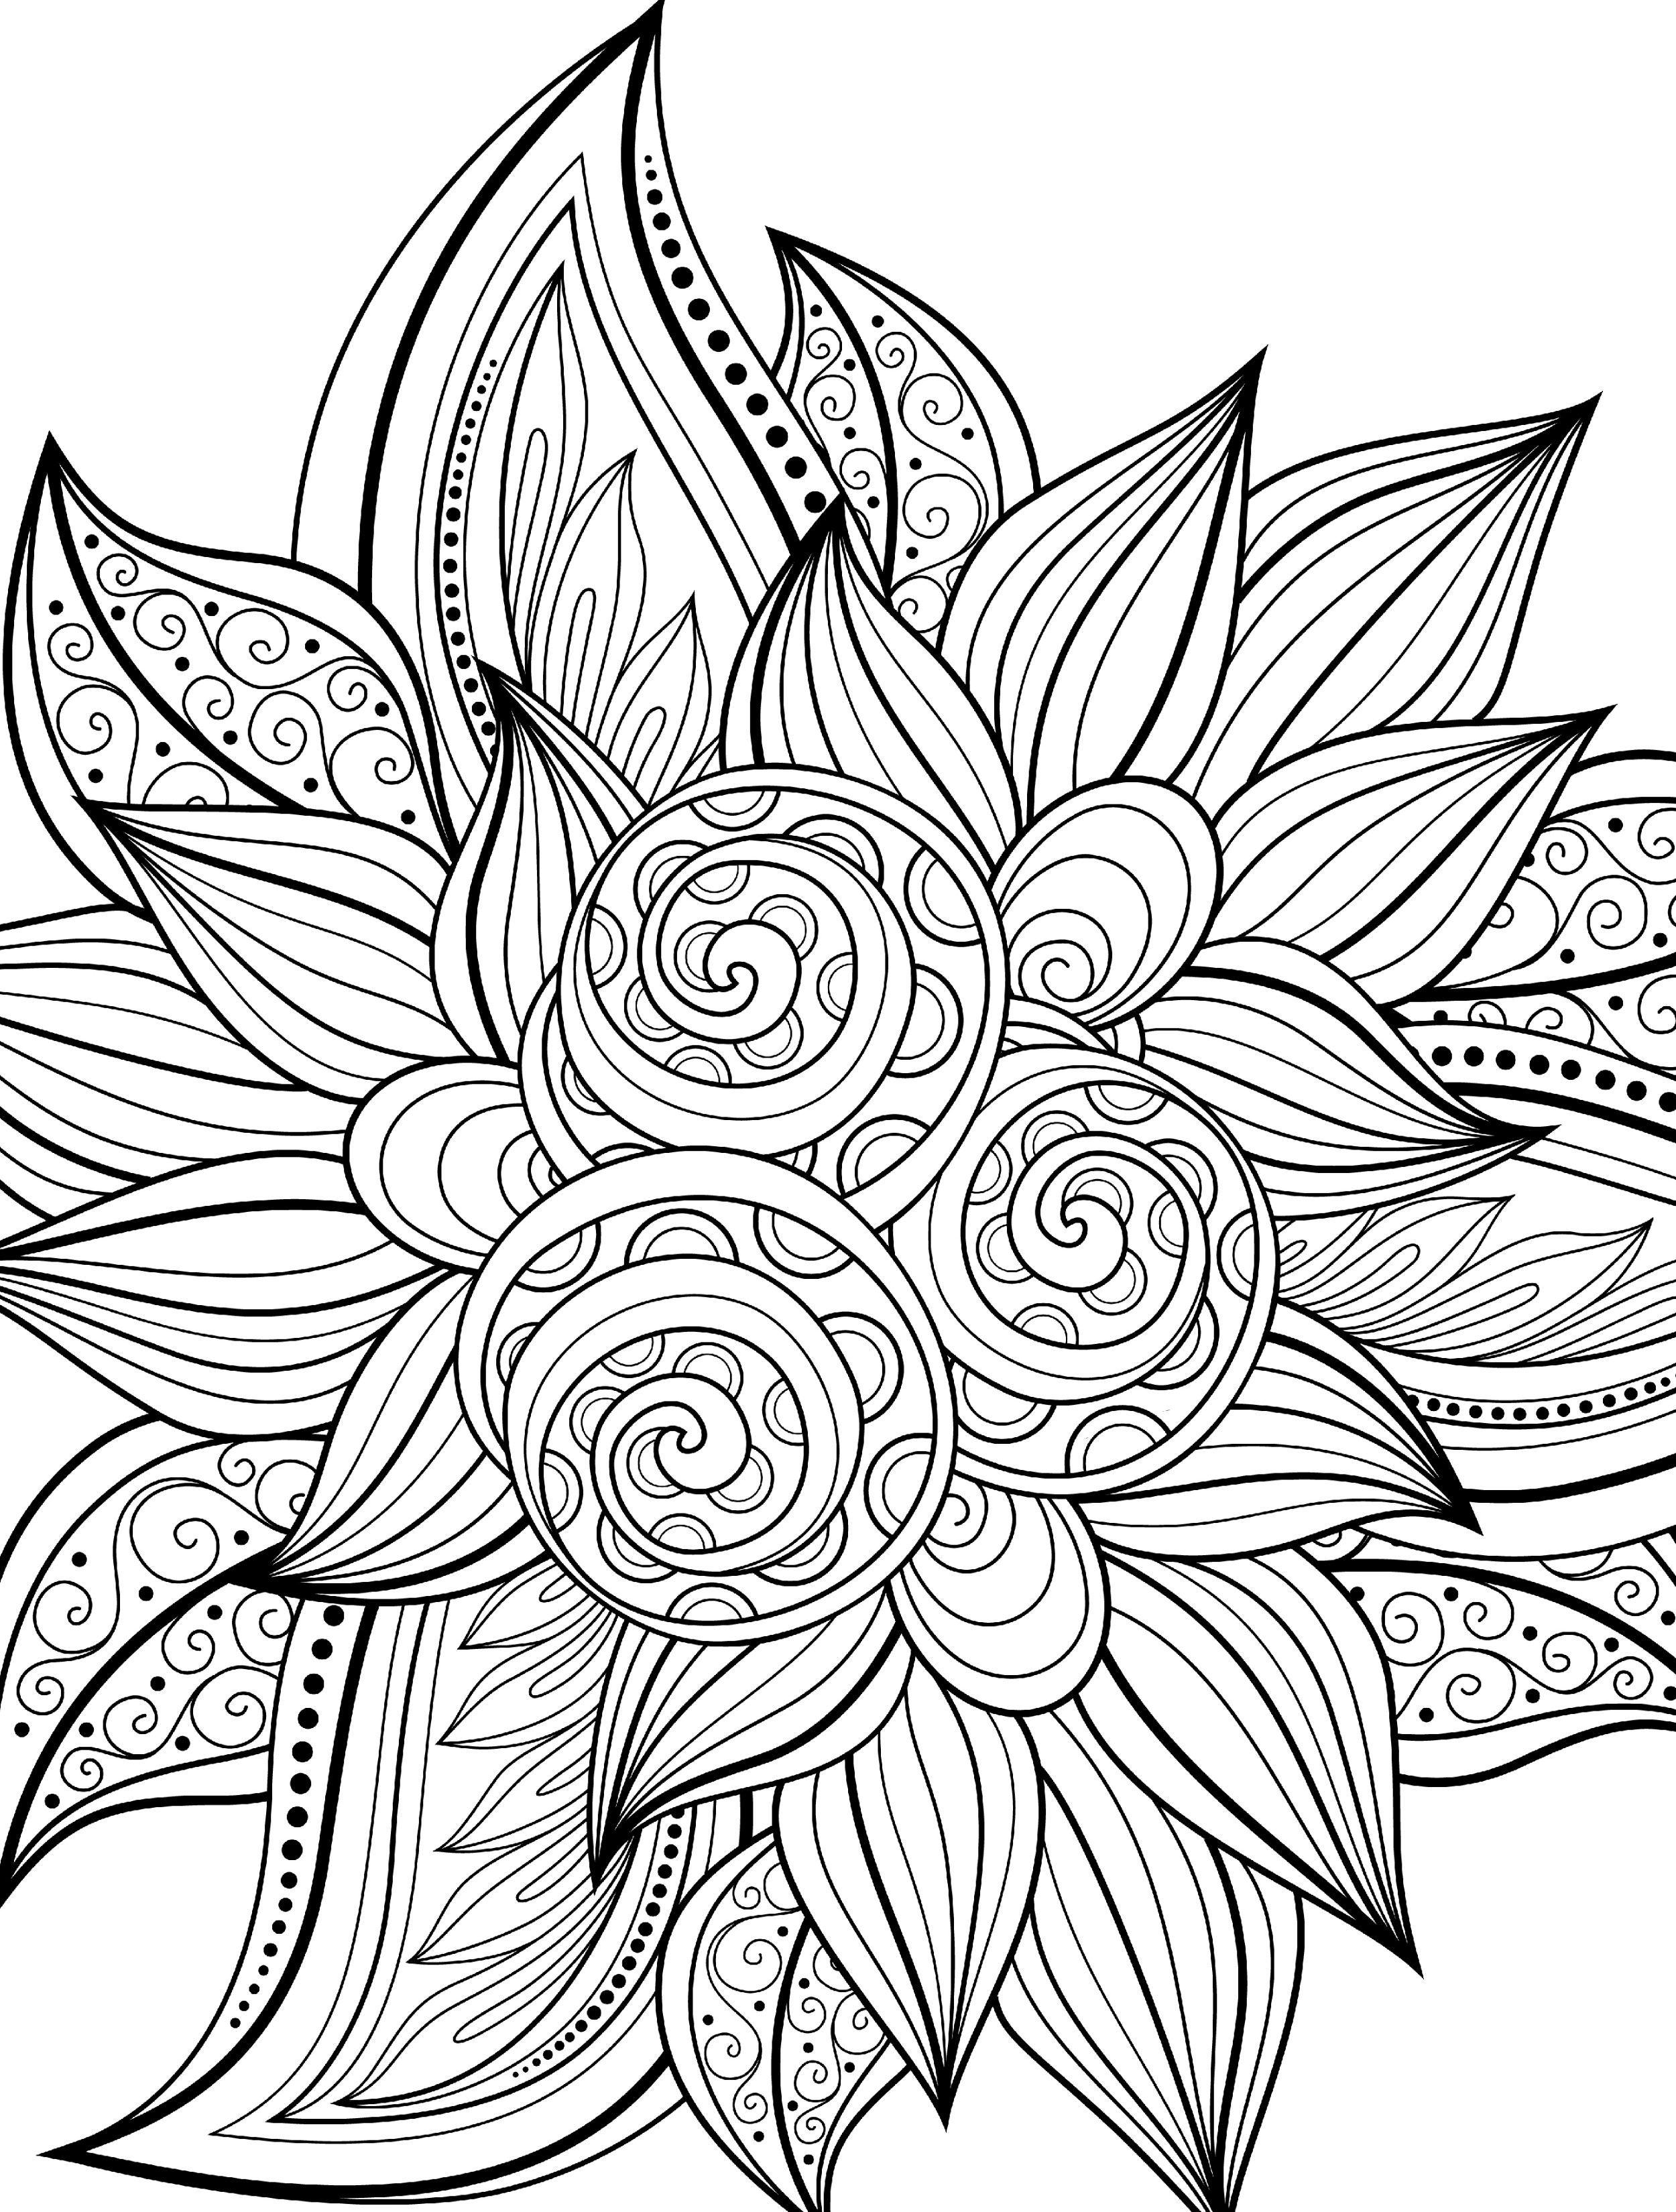 2500x3300 Splendid Design Ideas Printable Coloring Pages Adults Free Leo